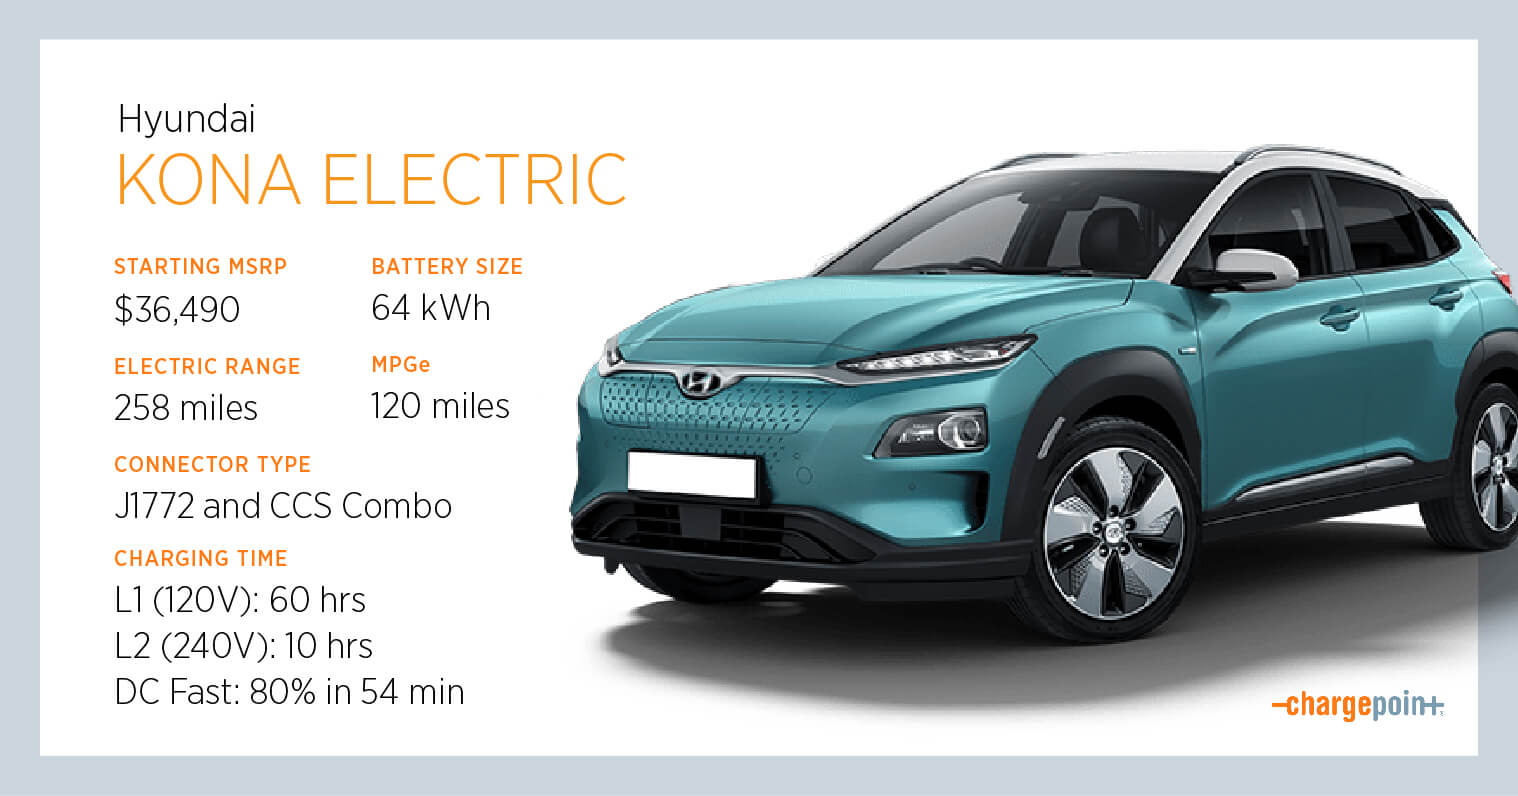 Everything You Need To Know About Charging The Hyundai Kona Electric Chargepoint